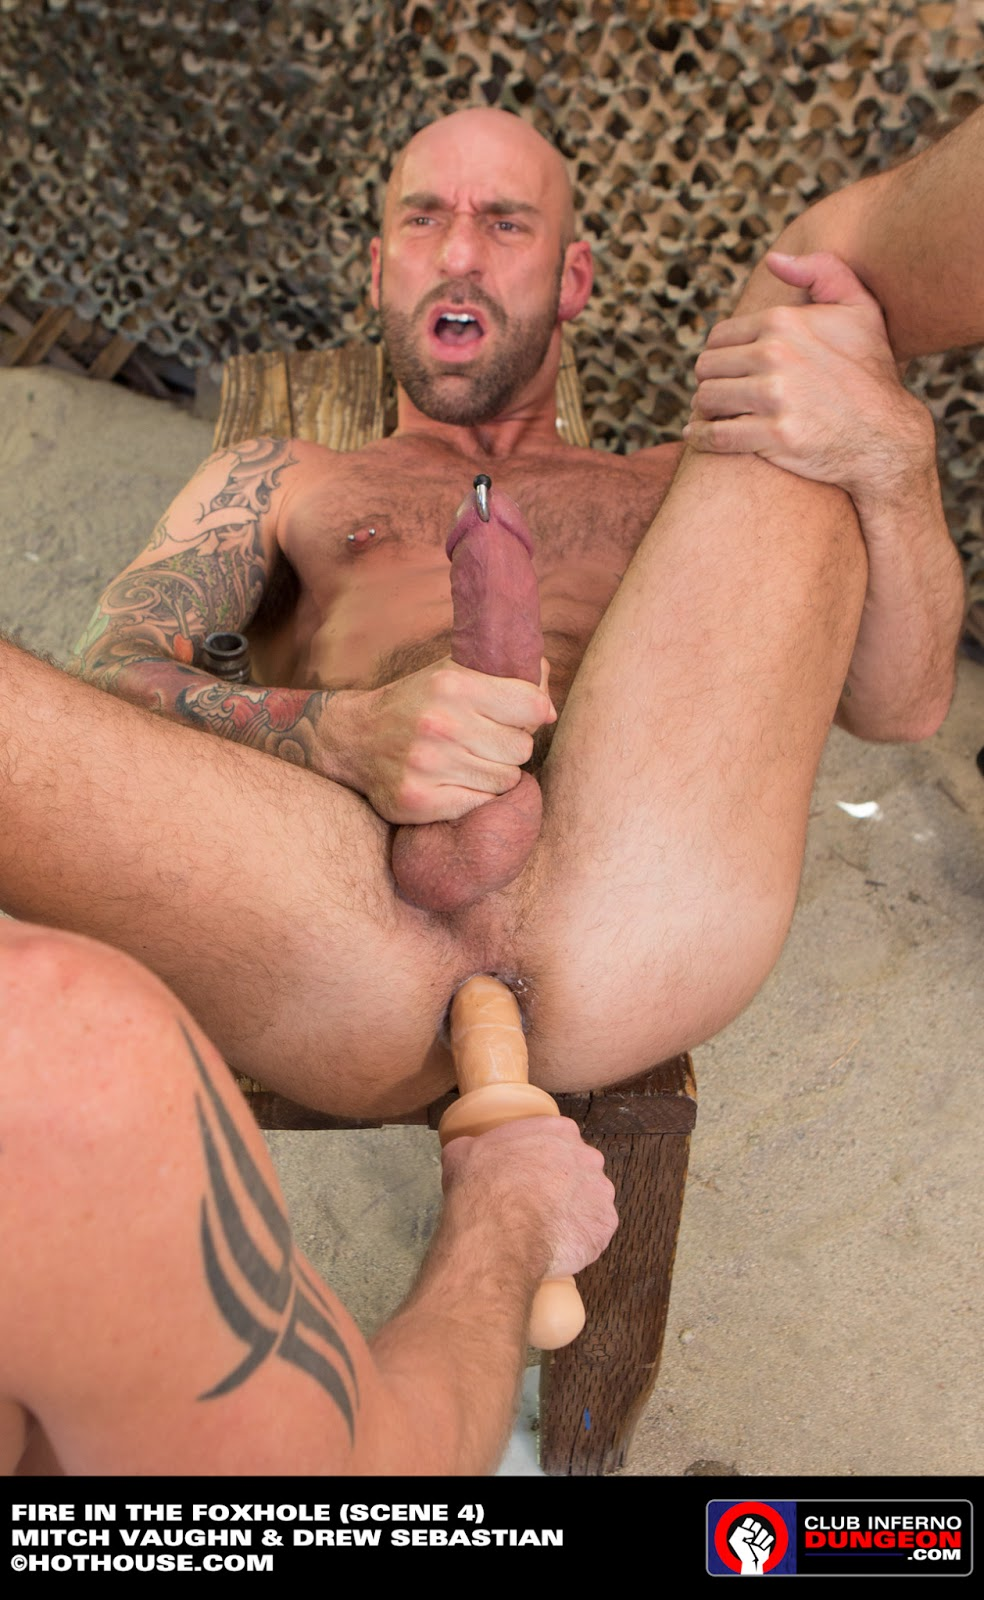 from Anton gay men with dildo